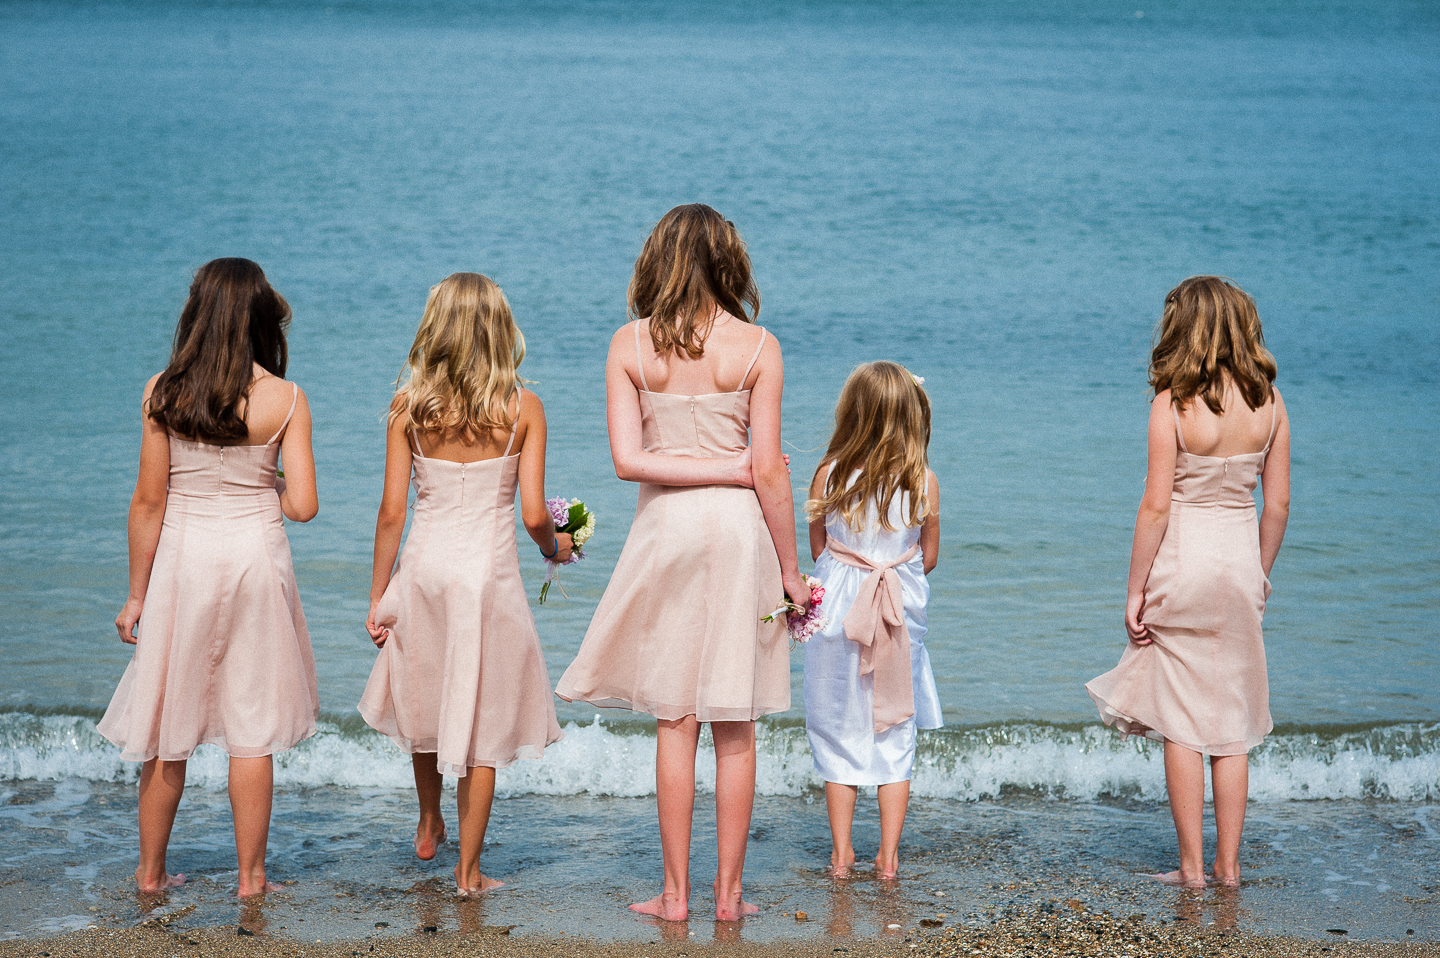 the jr bridesmaids seeing how close they can get to the ocean without getting their dresses wet